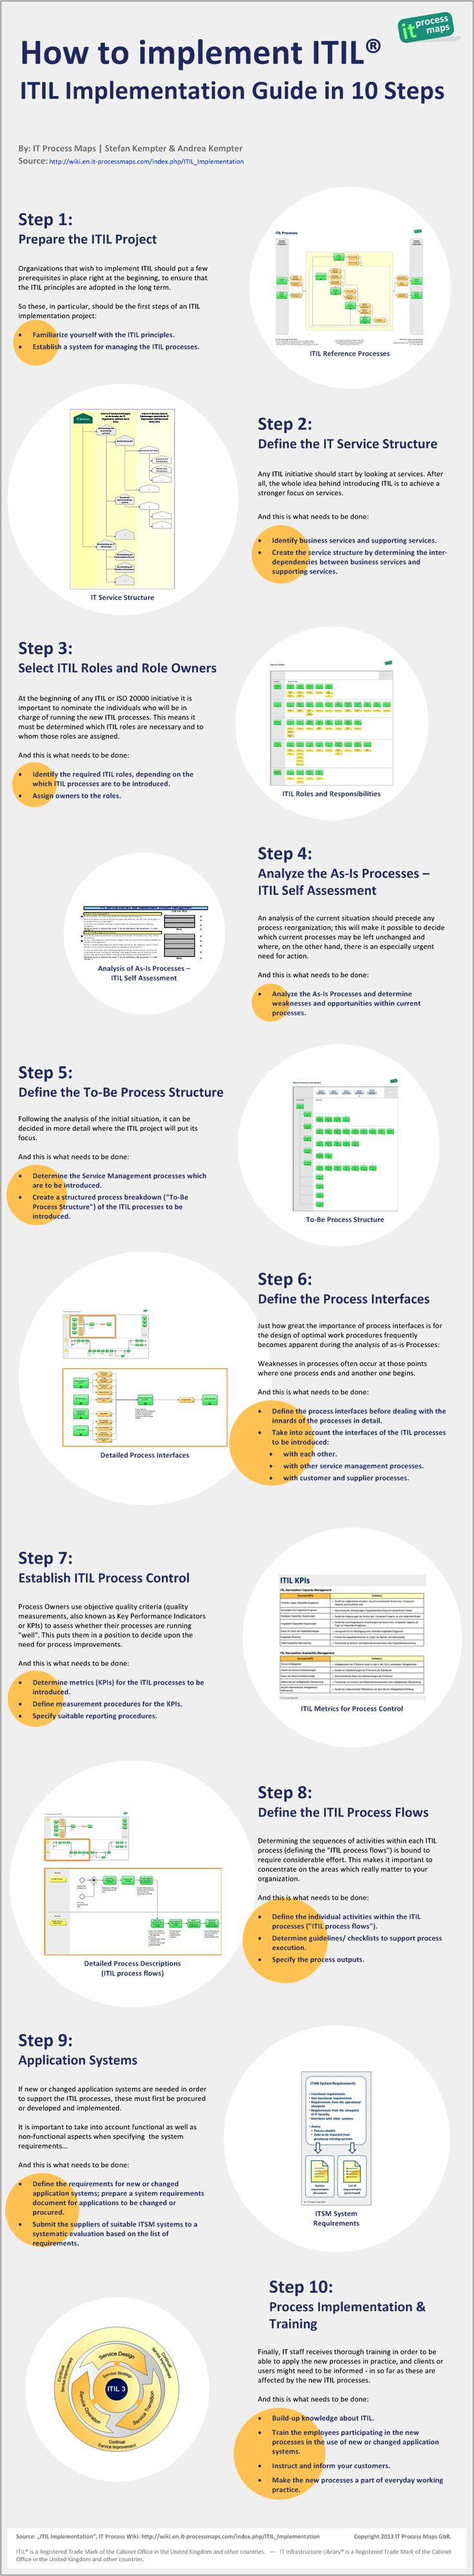 "Infographic ""ITIL Implementation Guide in 10 Steps"" Let us helping you improve your operational productivity while reducing IT costs! Request your FREE DEMO: www.ism4it.com/fritz"